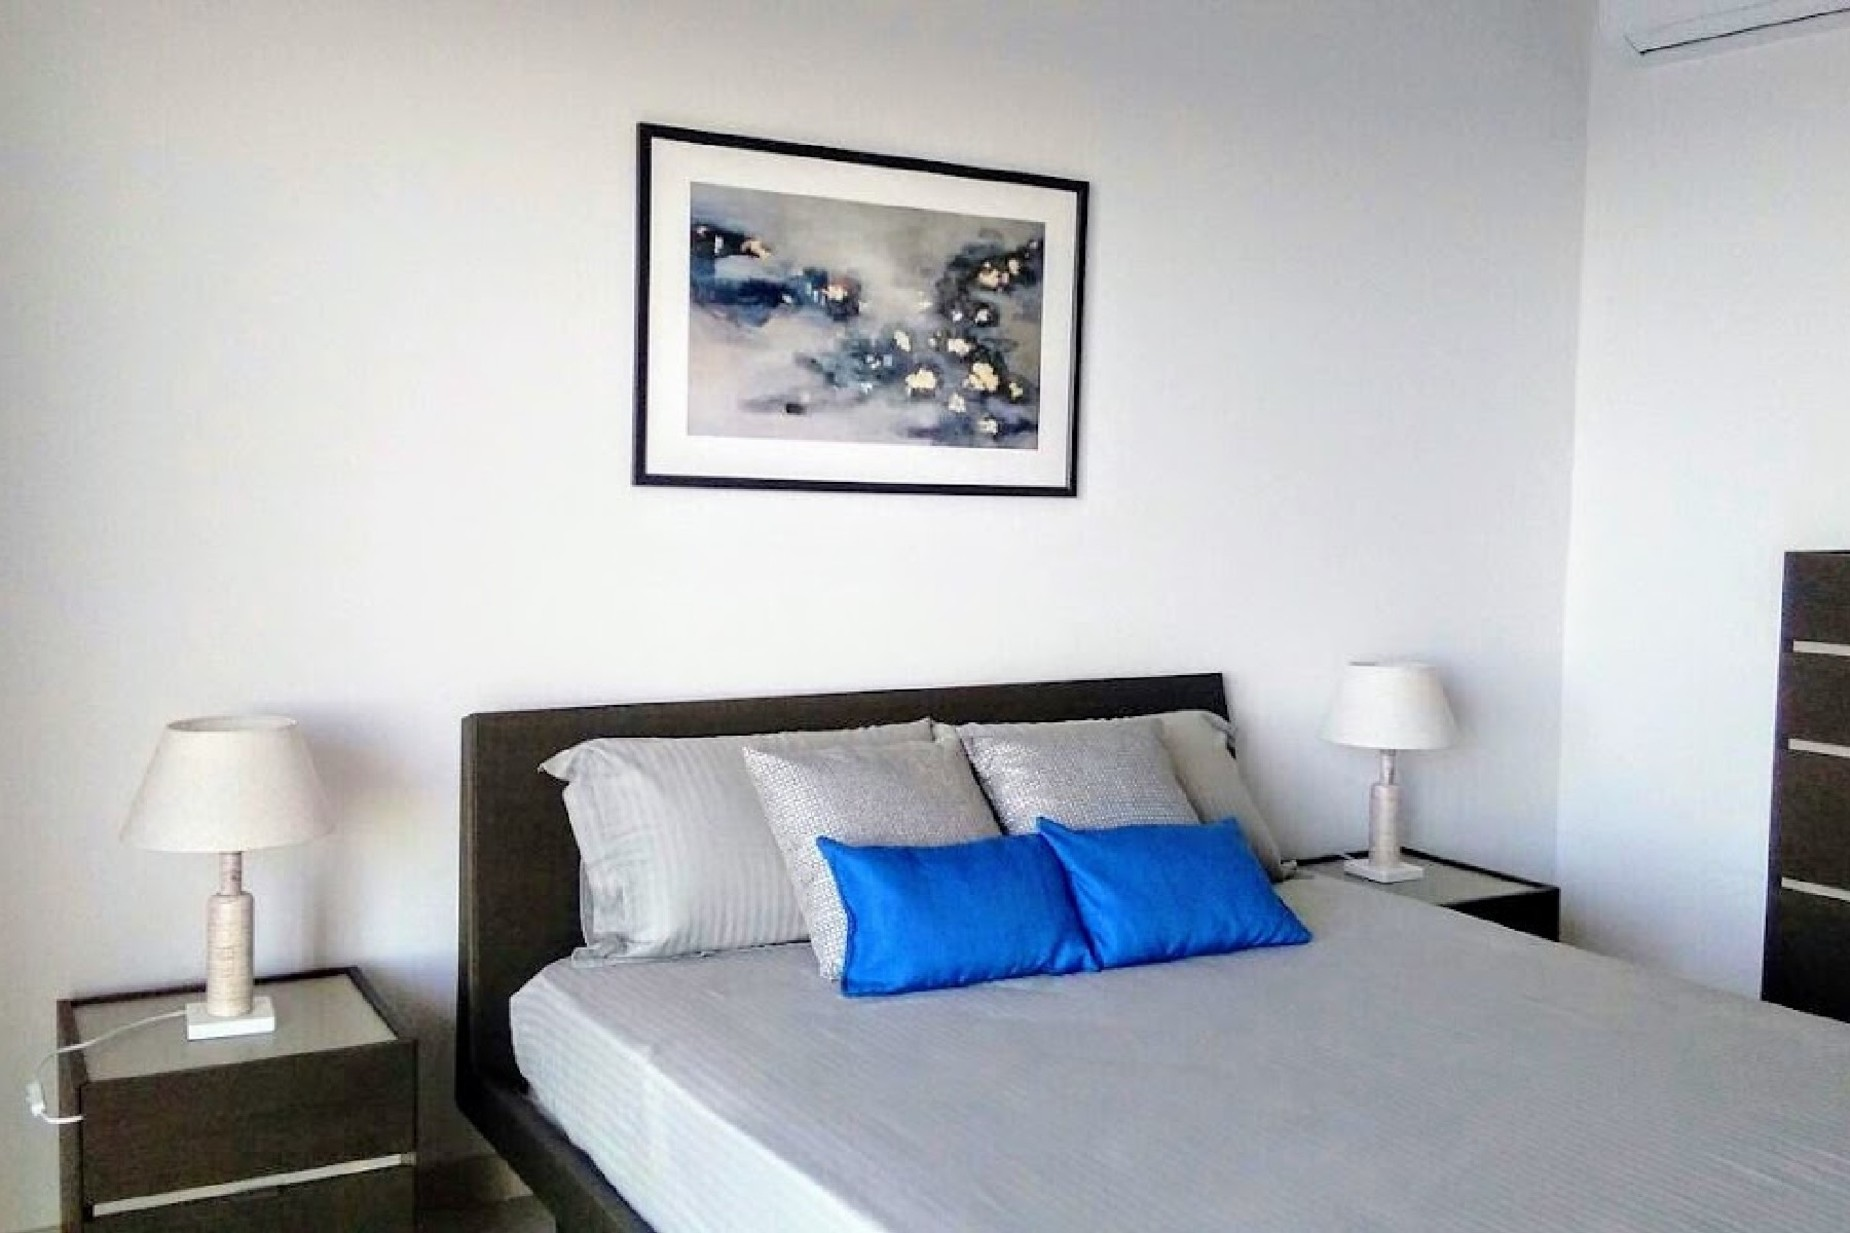 3 bed Apartment For Rent in Mellieha, Mellieha - thumb 8